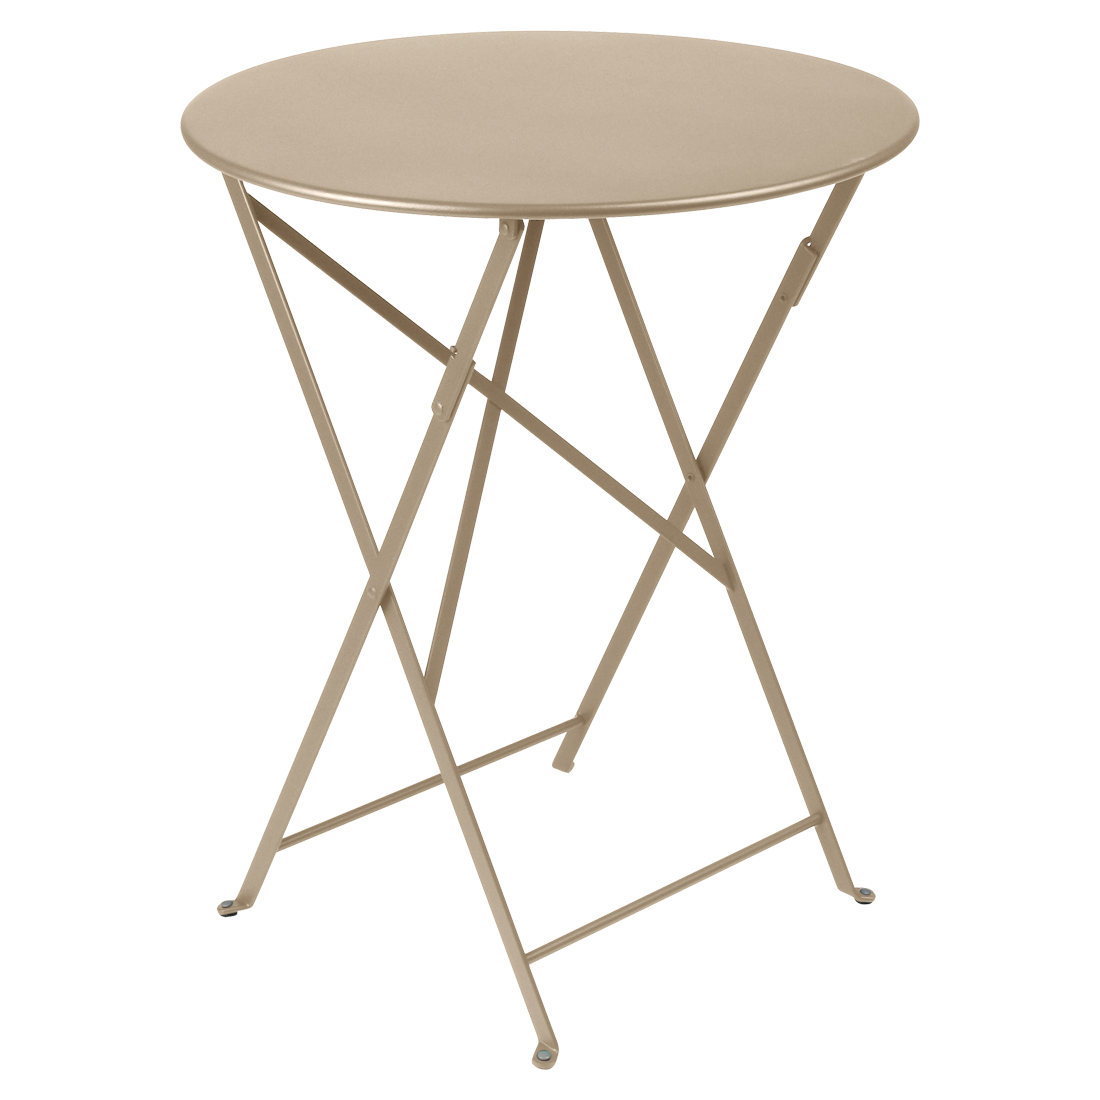 Ø 60 Cm Table. Bistro